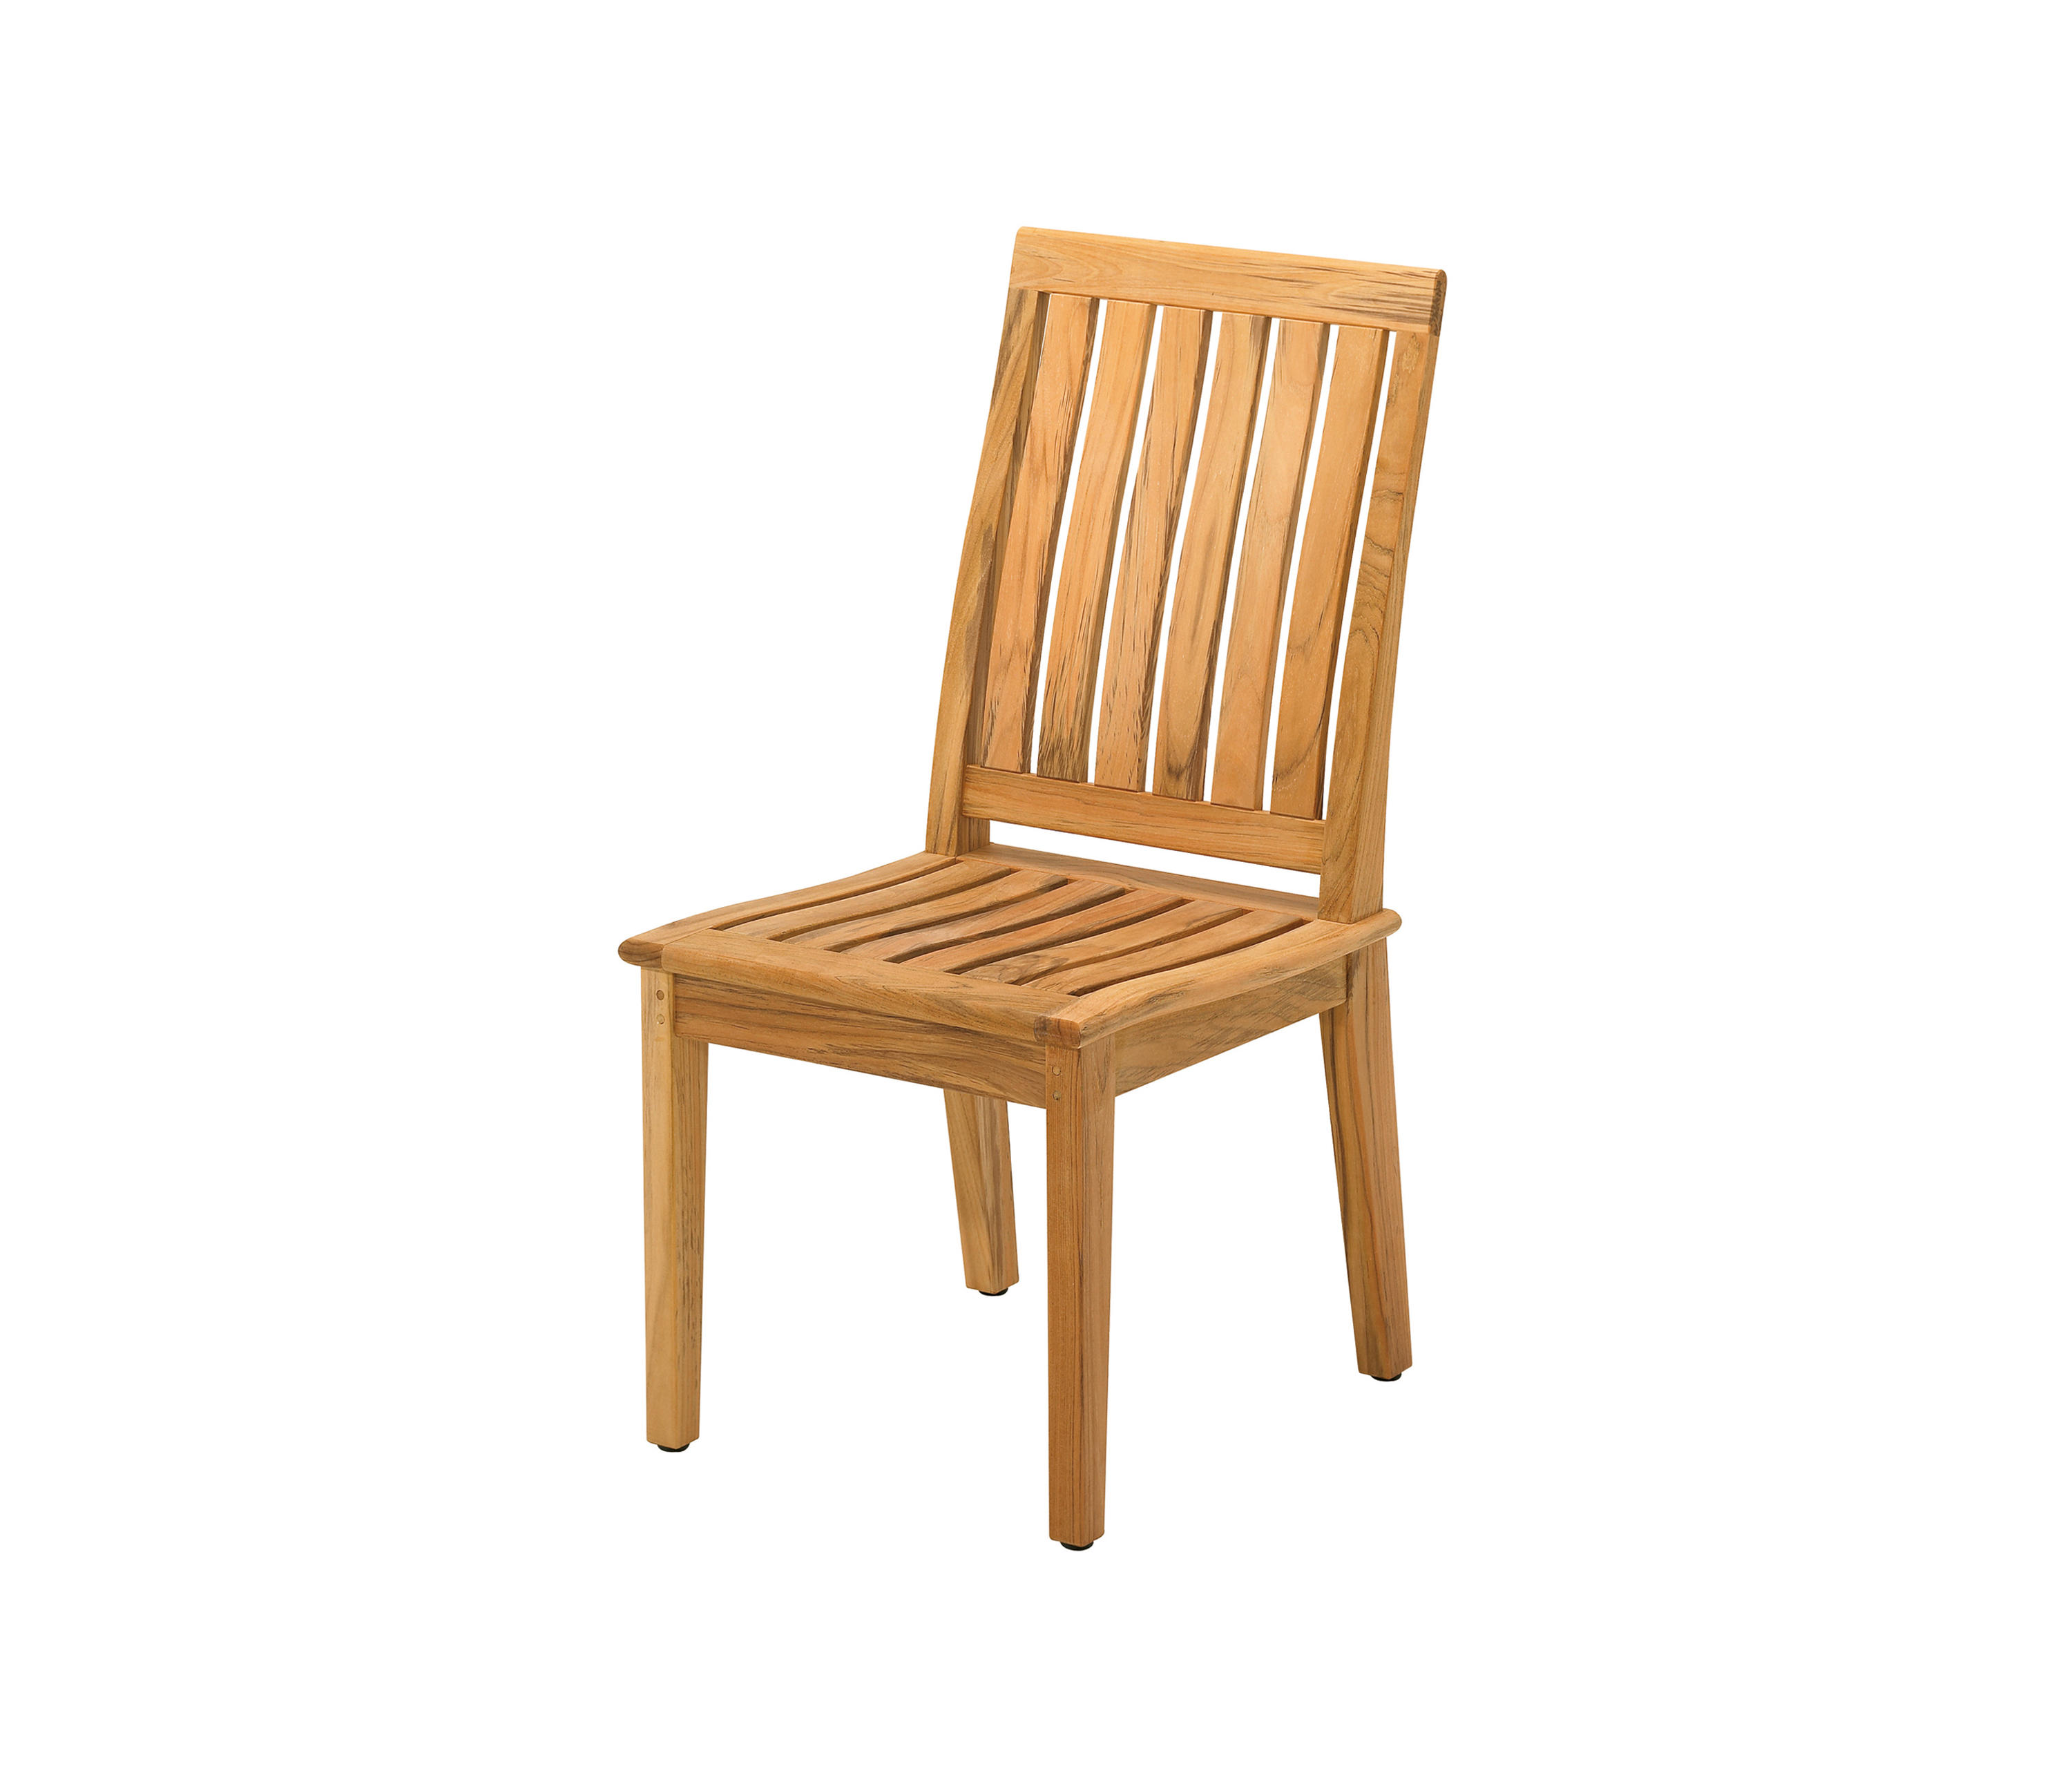 Ventura dining chair garden chairs from gloster